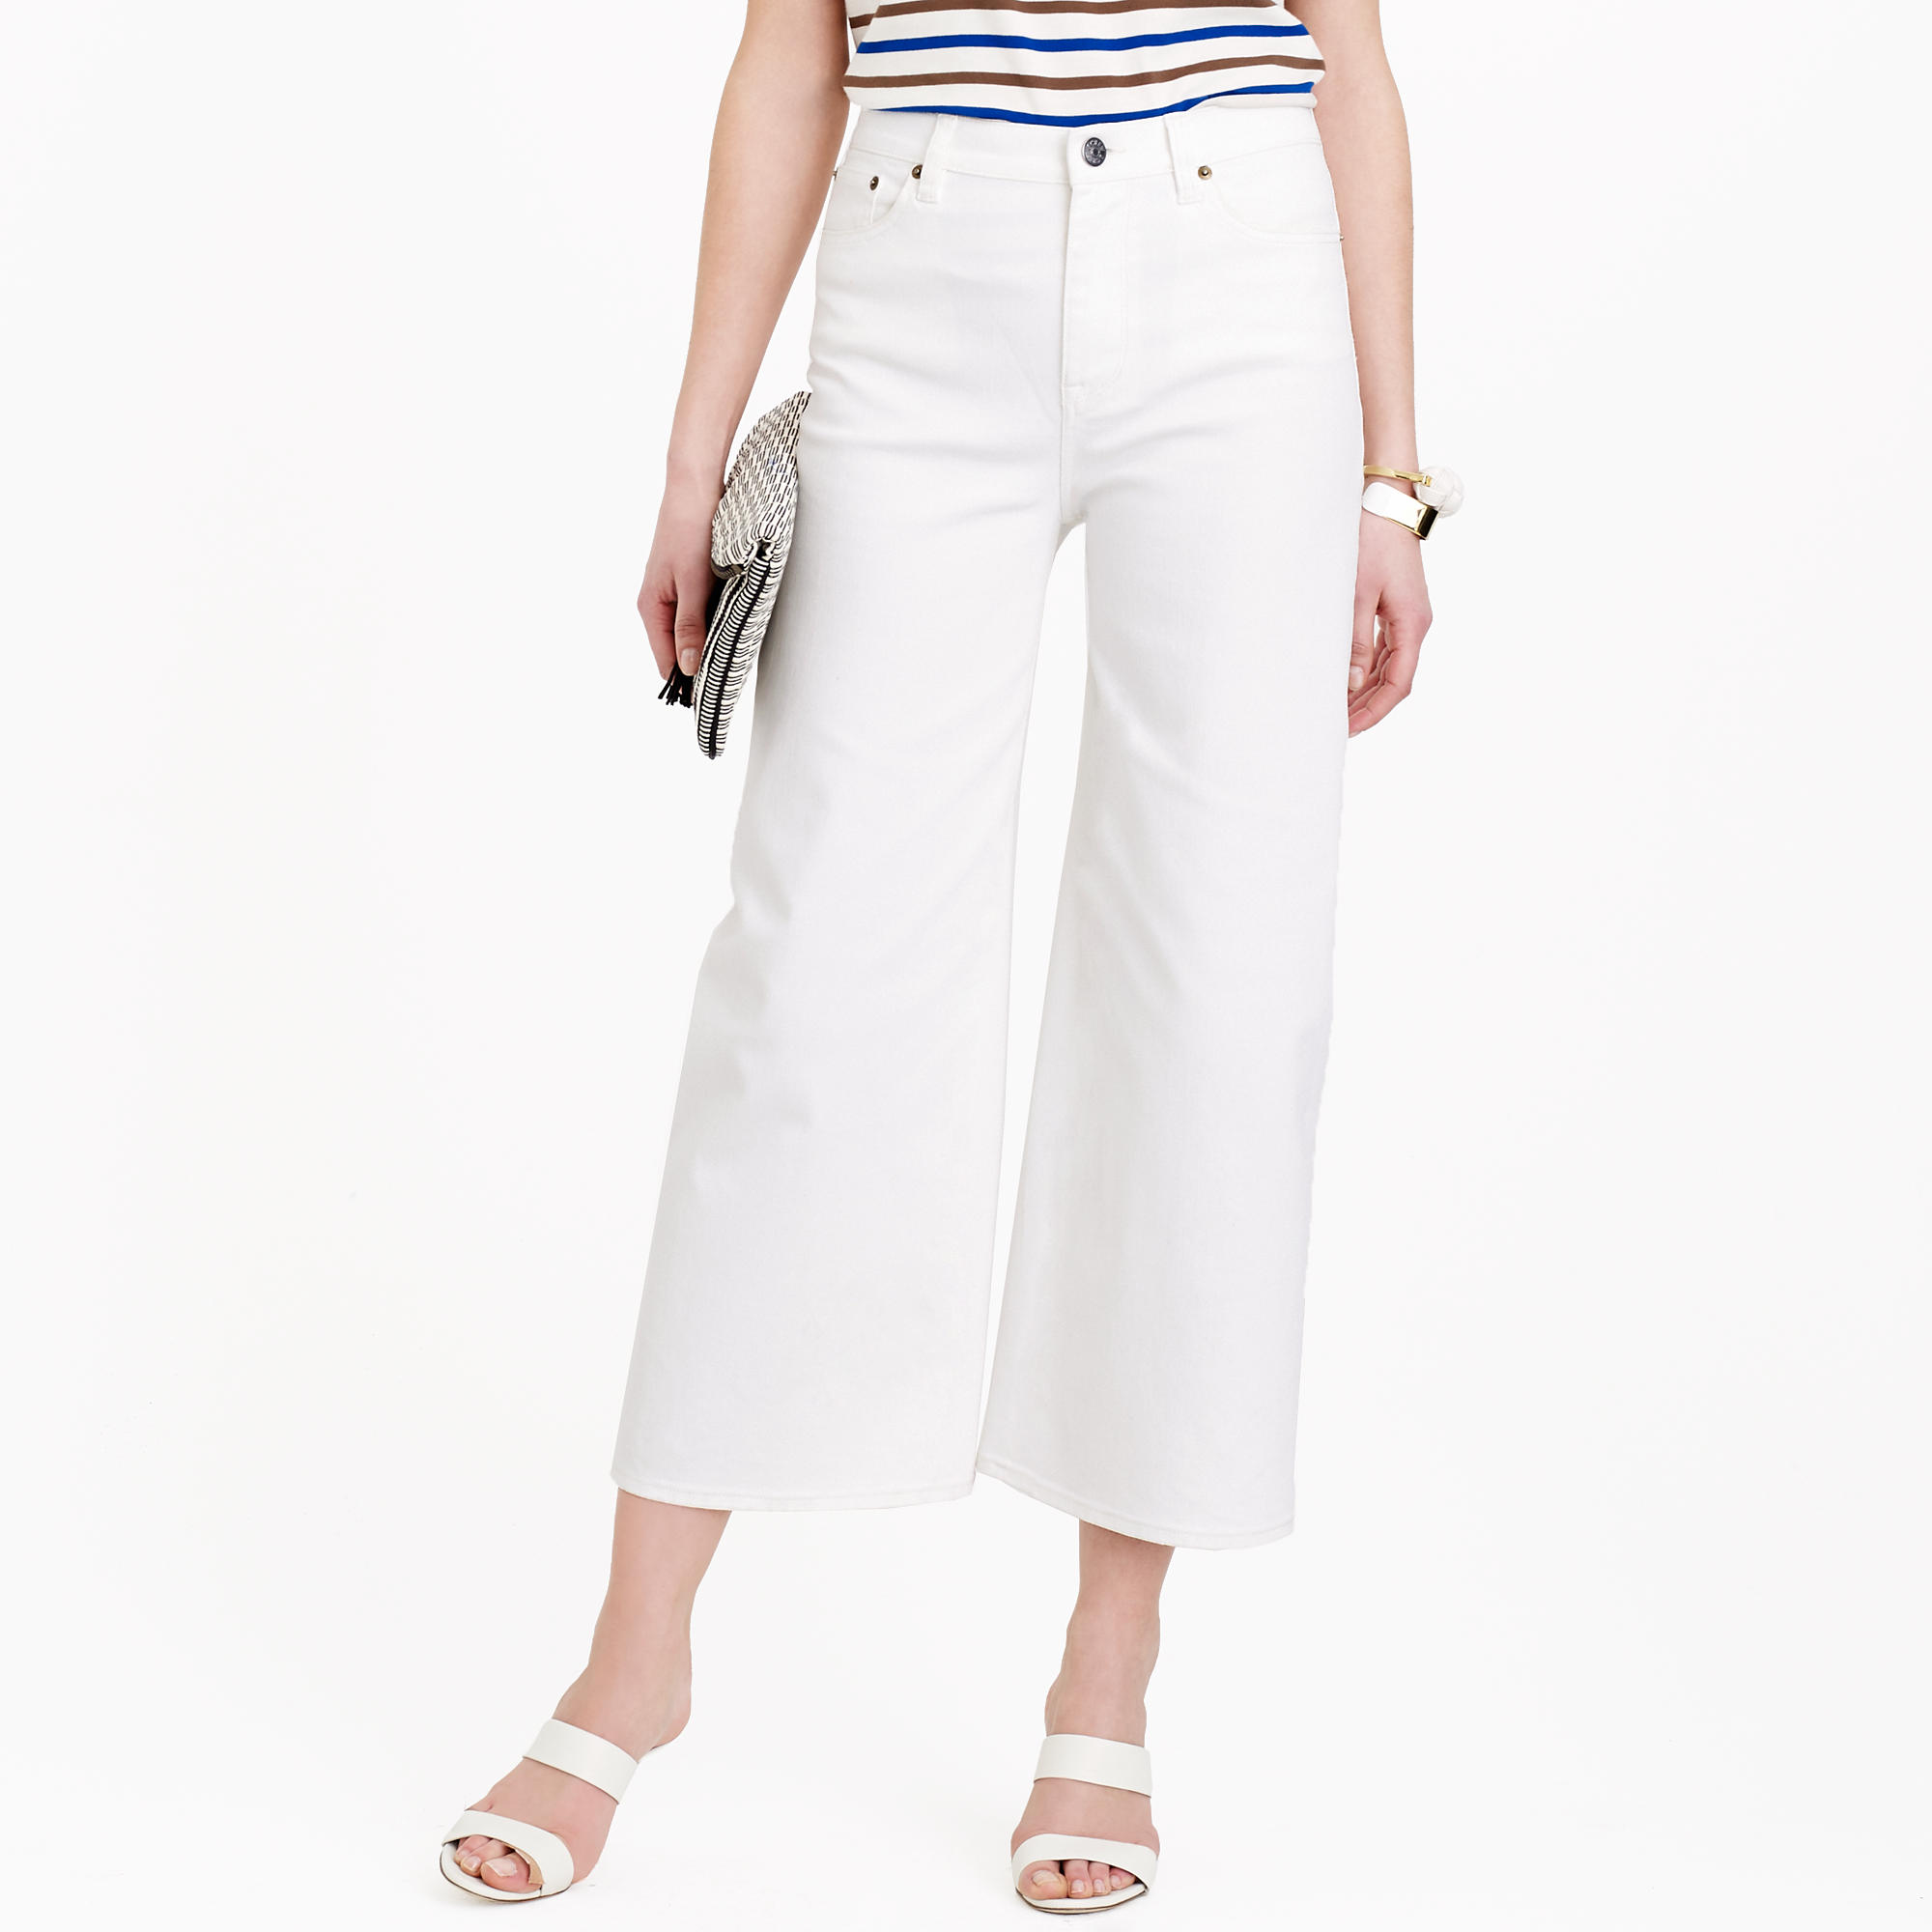 Sale Largest Supplier Cropped High-rise Wide-leg Jeans - White J.crew Outlet Cheapest Outlet Cost Cheap Sale Finishline Cheap Sale Pick A Best 7sP3oo